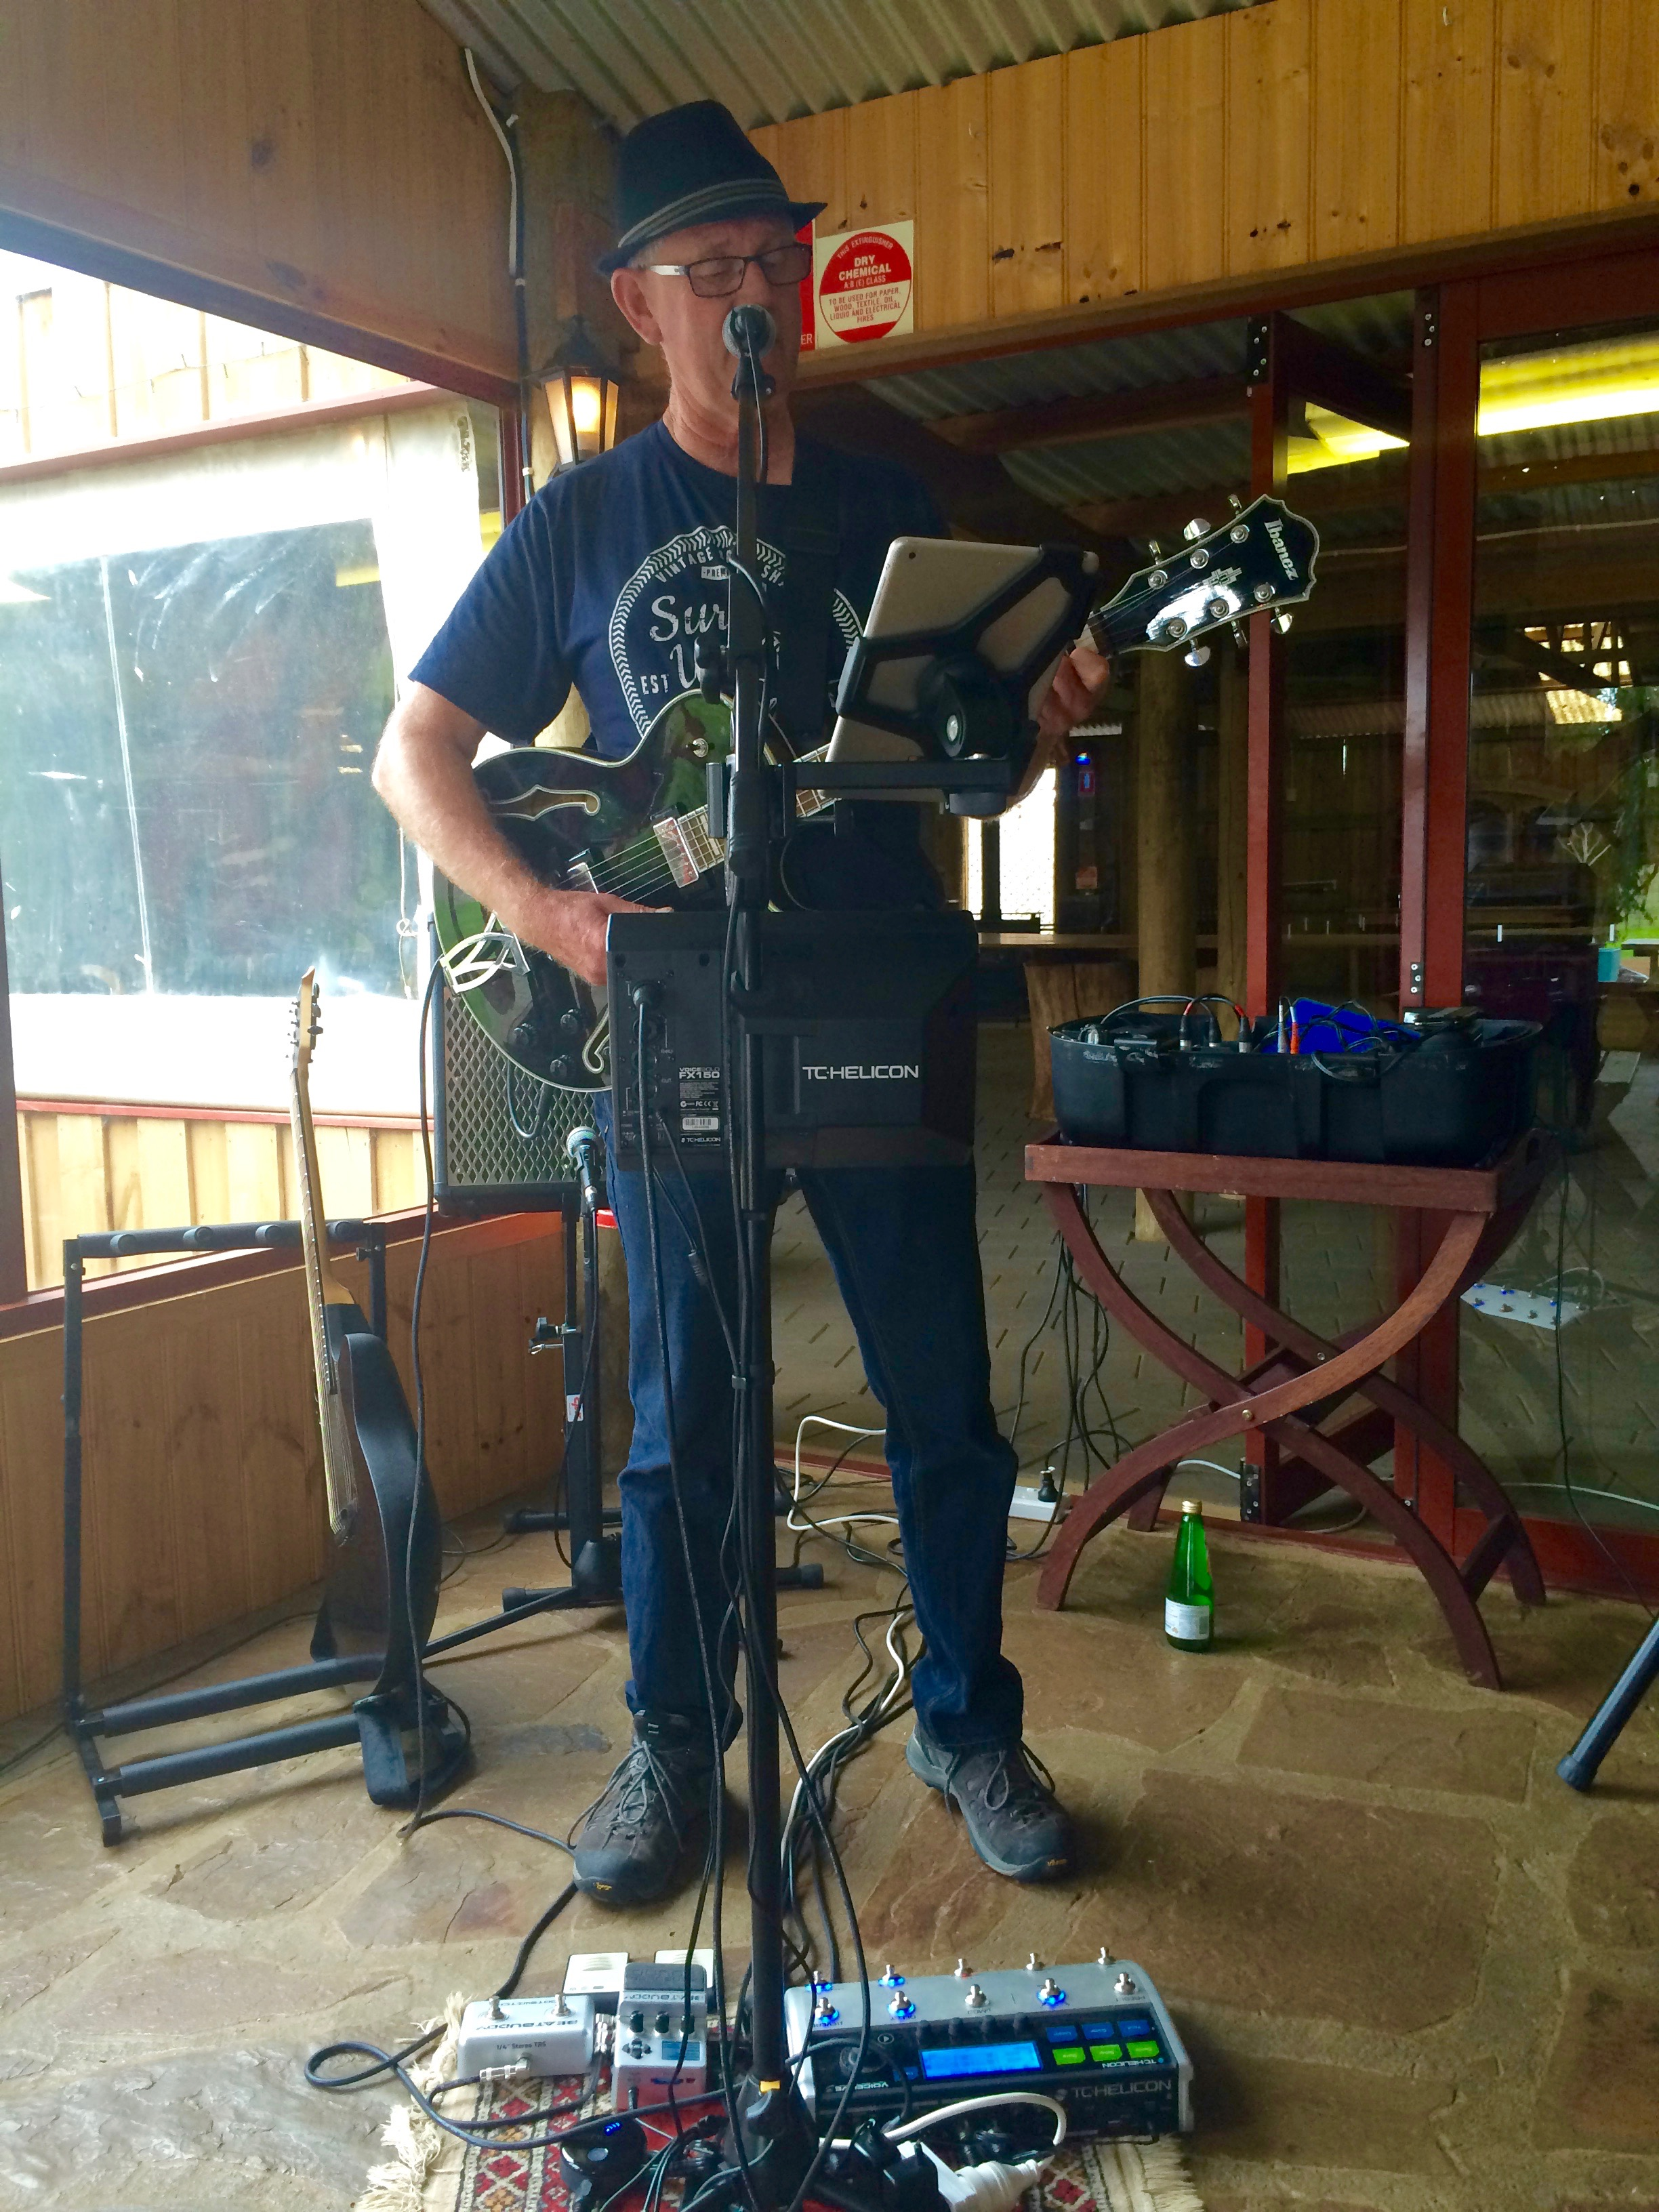 Our local and talented musician, Graham, getting down on the guitar.